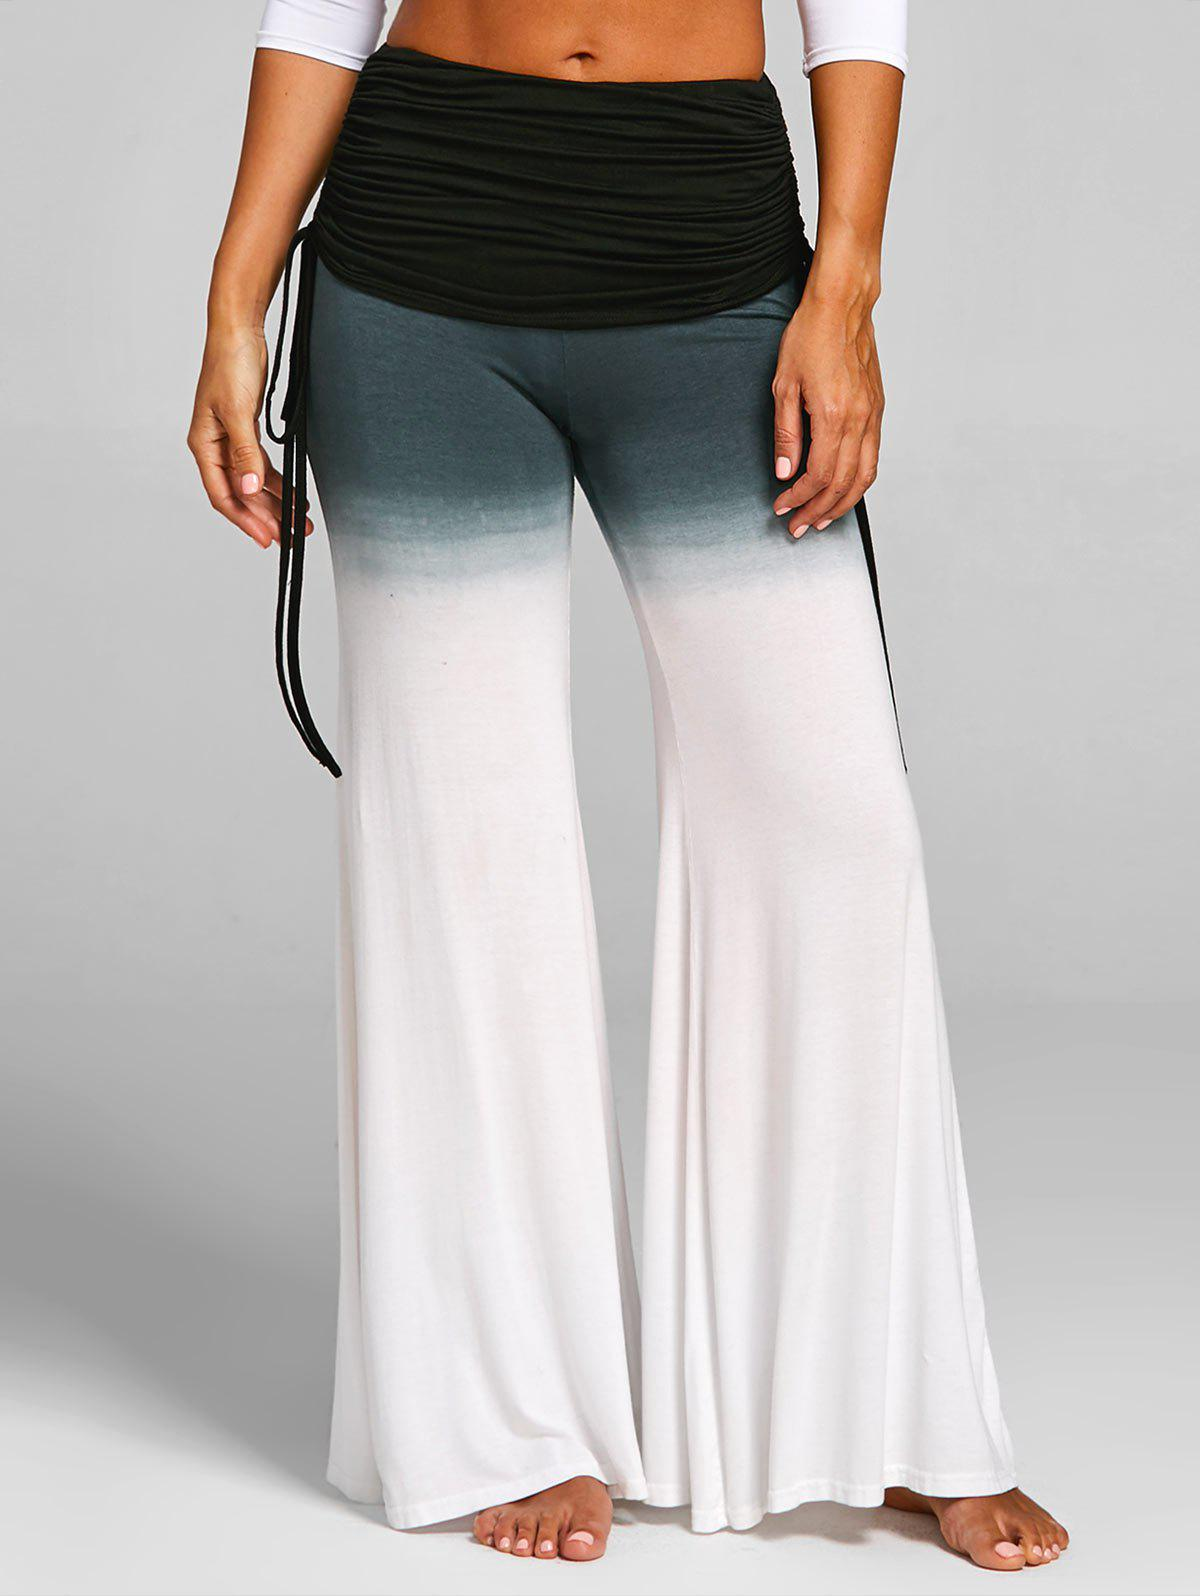 Affordable High Rise Ruched Gradient Bell Bottom Pants